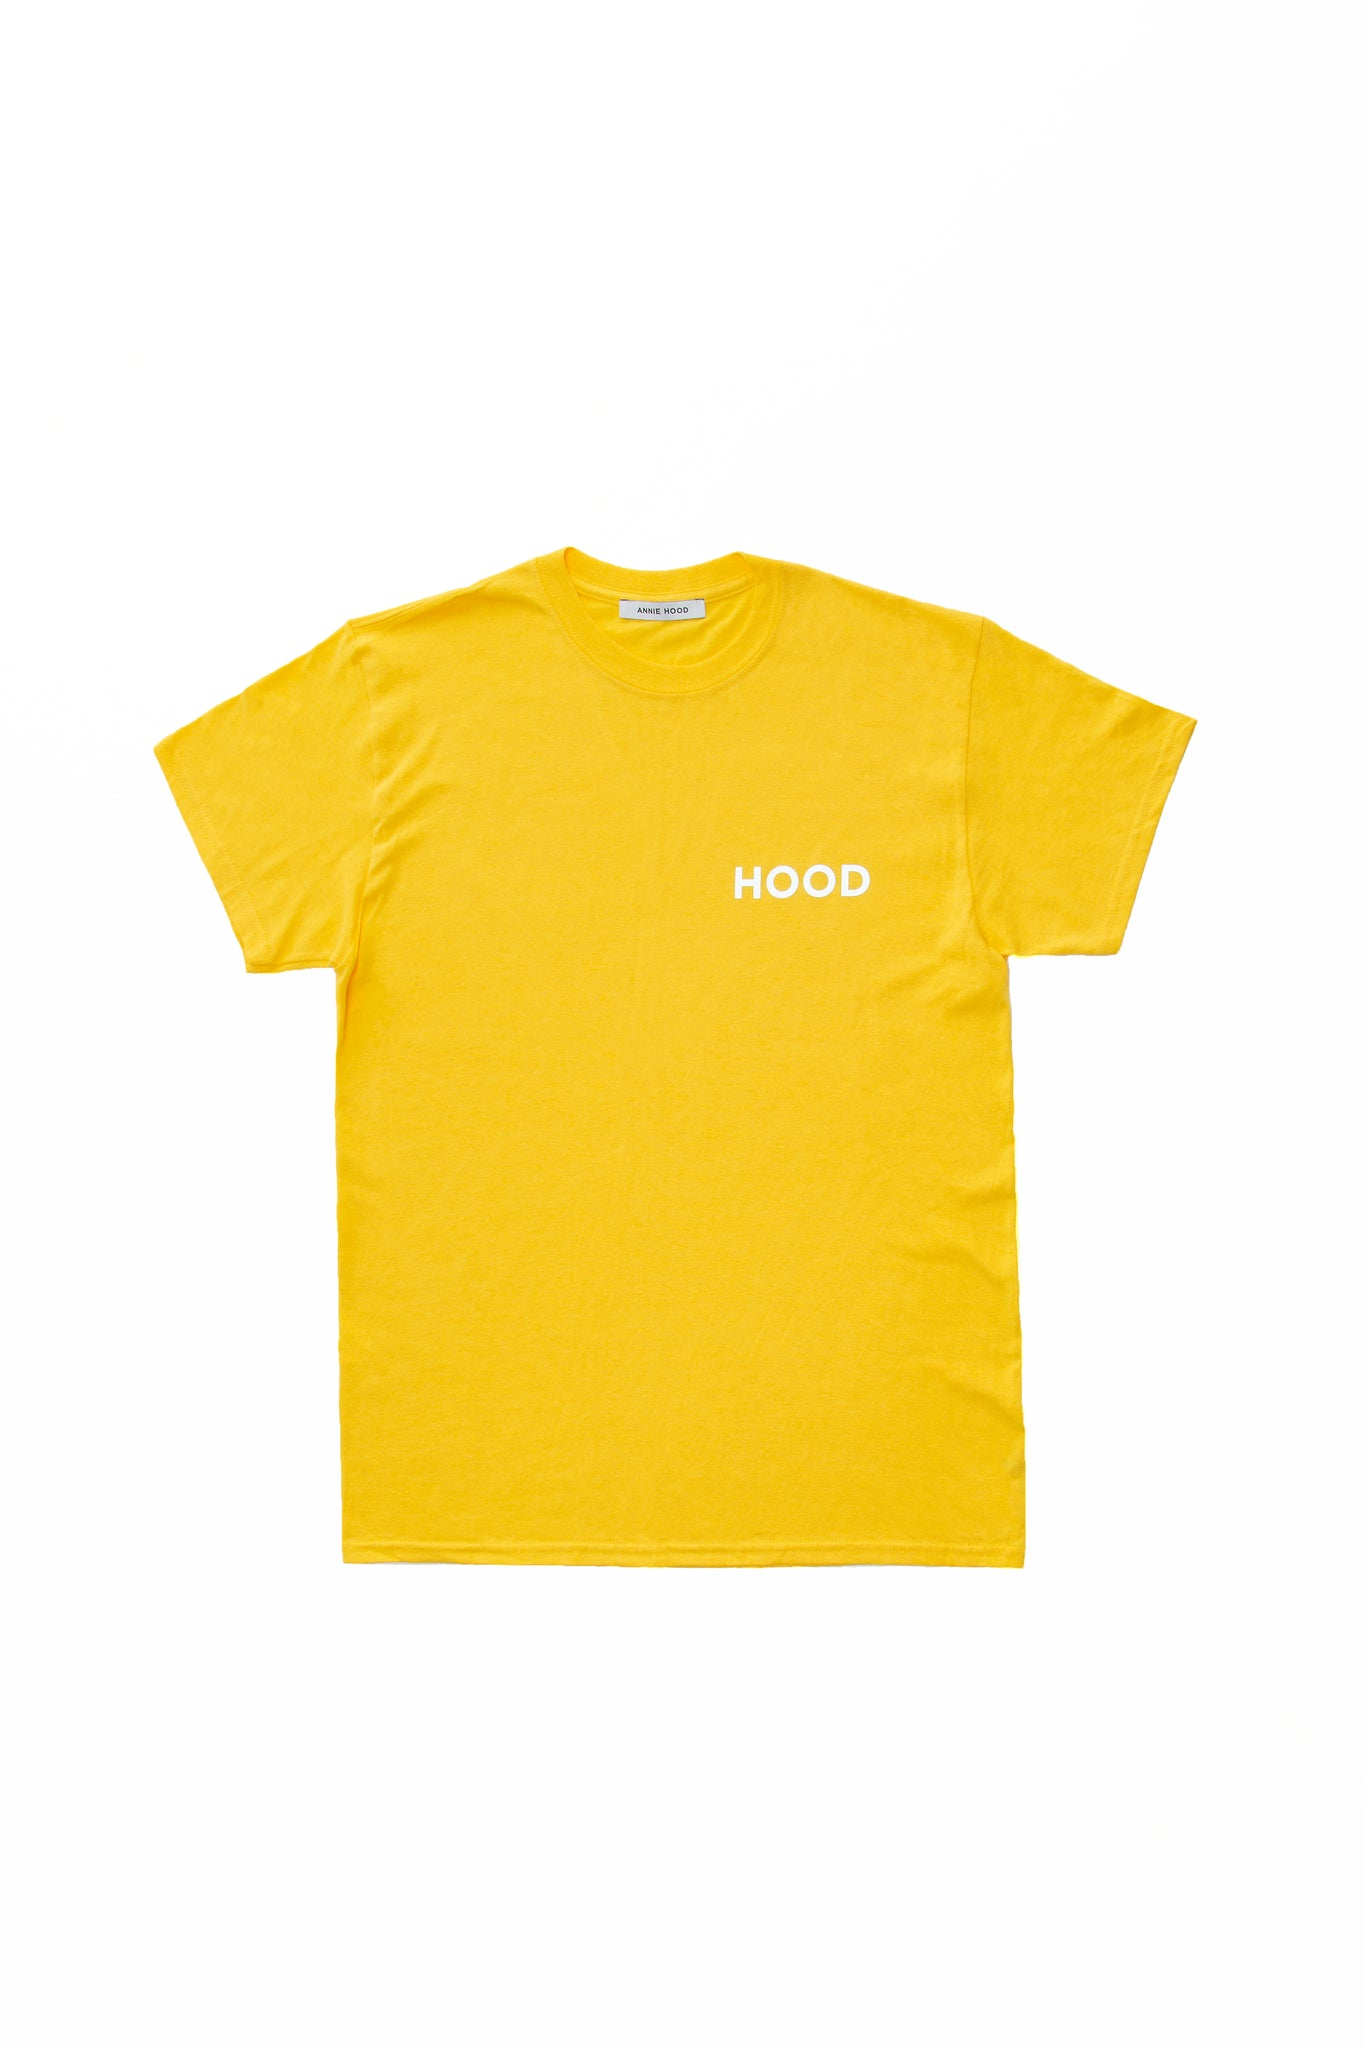 HOOD MERCH T 3M - YELLOW